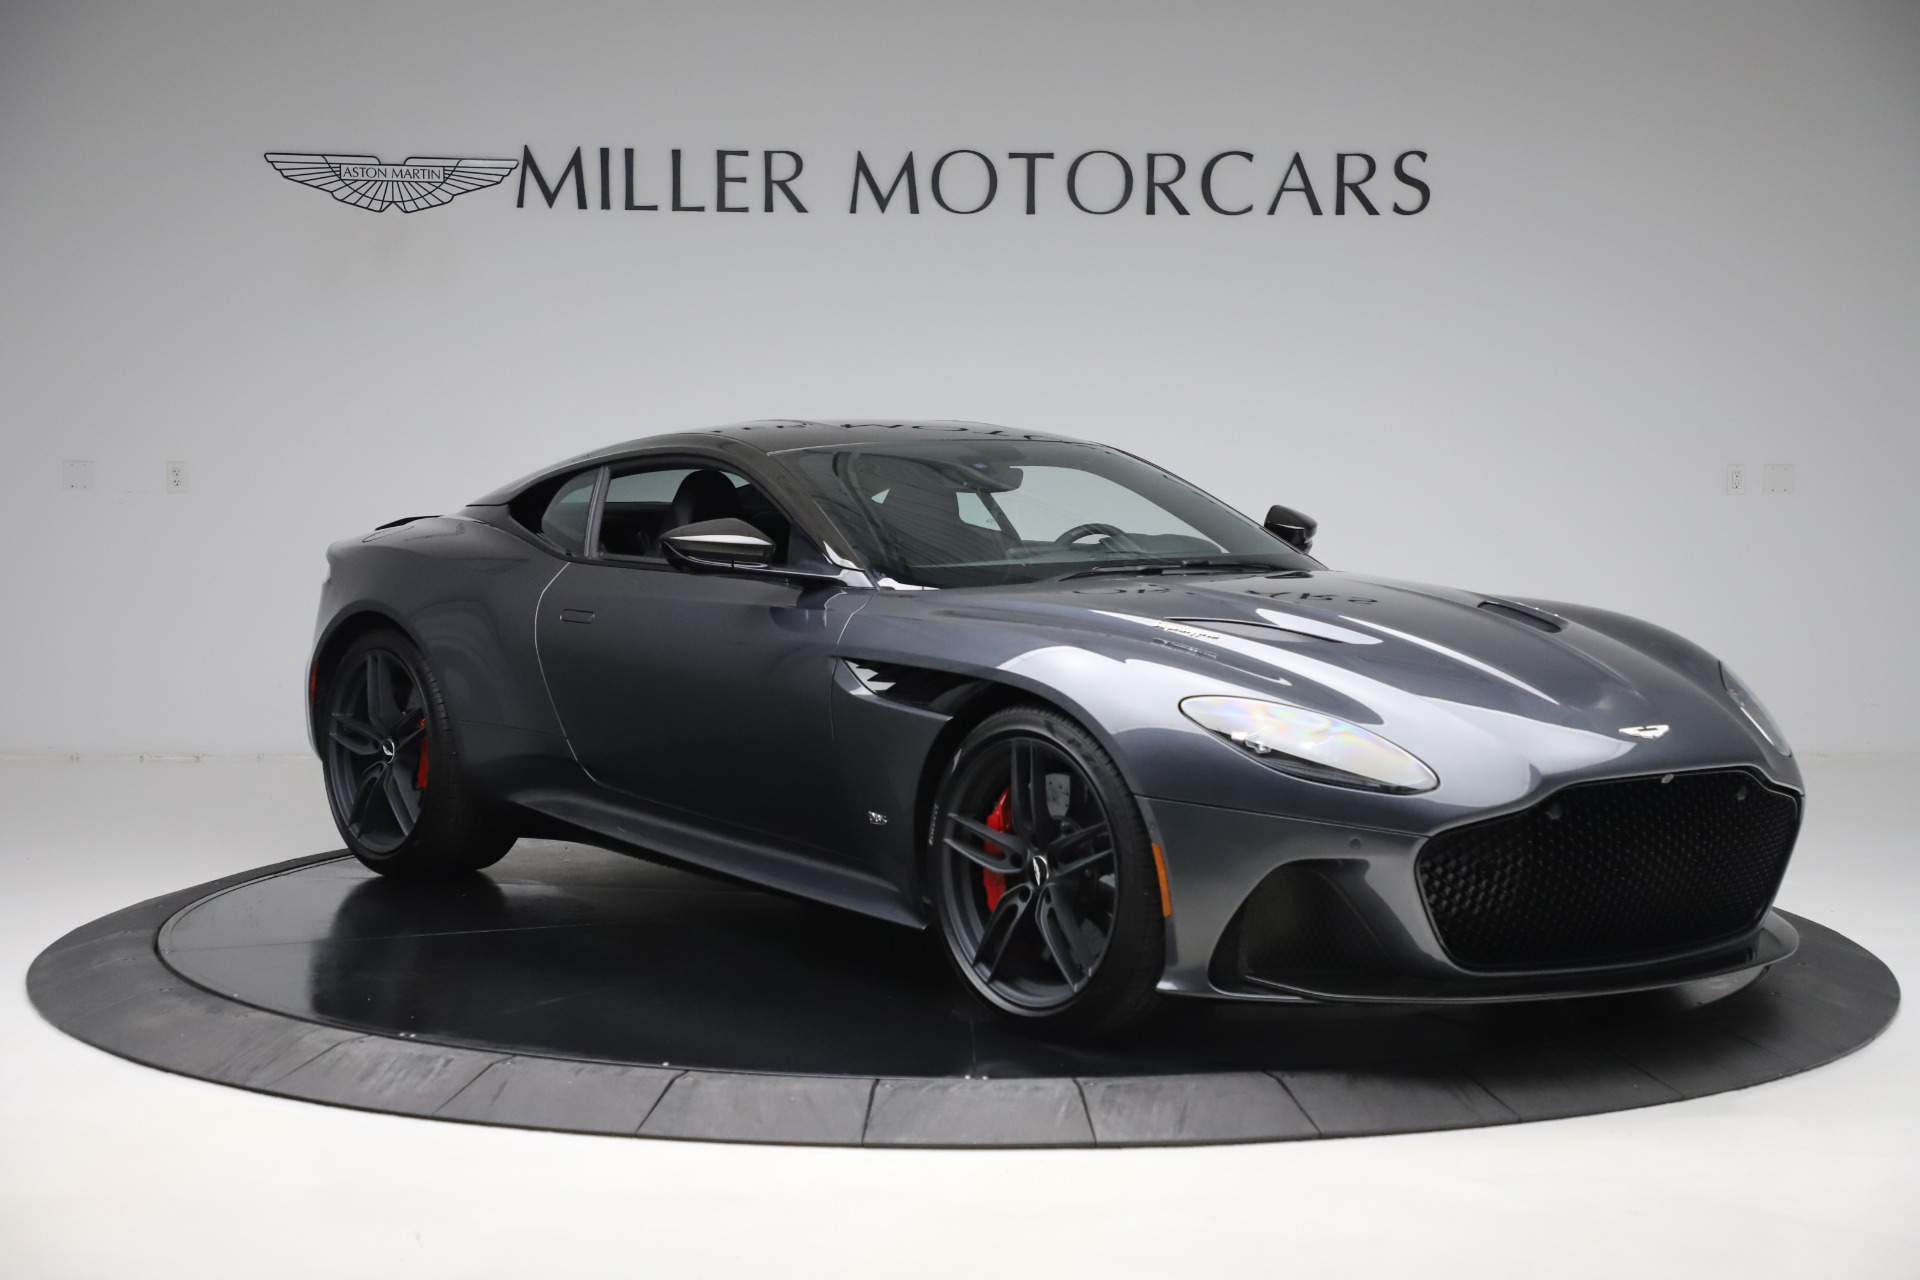 Used 2019 Aston Martin DBS Superleggera For Sale In Greenwich, CT 3570_p11